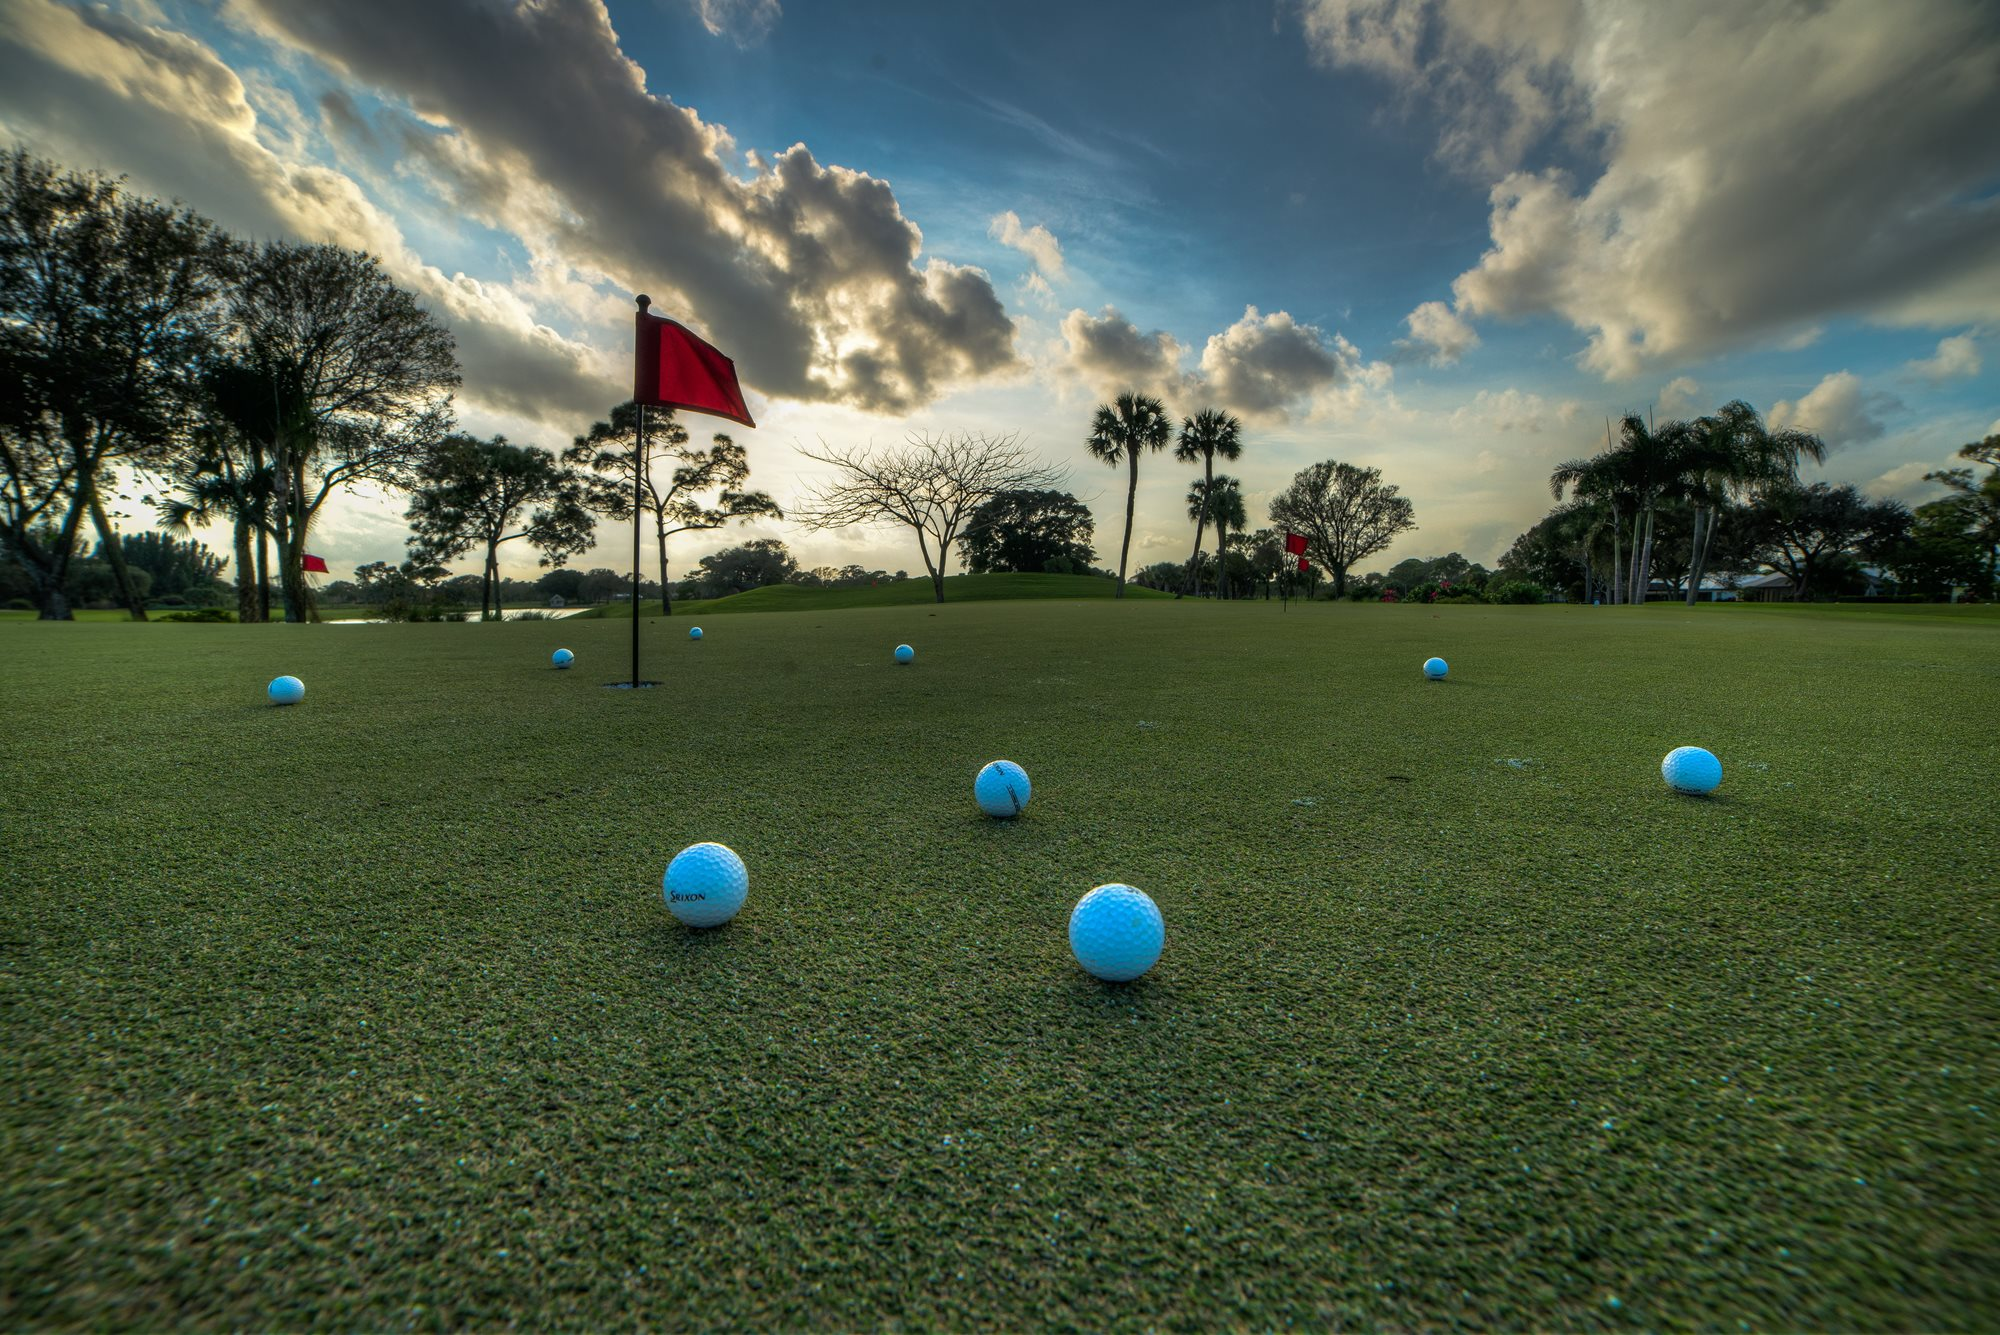 TurtleCreekClub_HighRes_Jpegs-40_3606